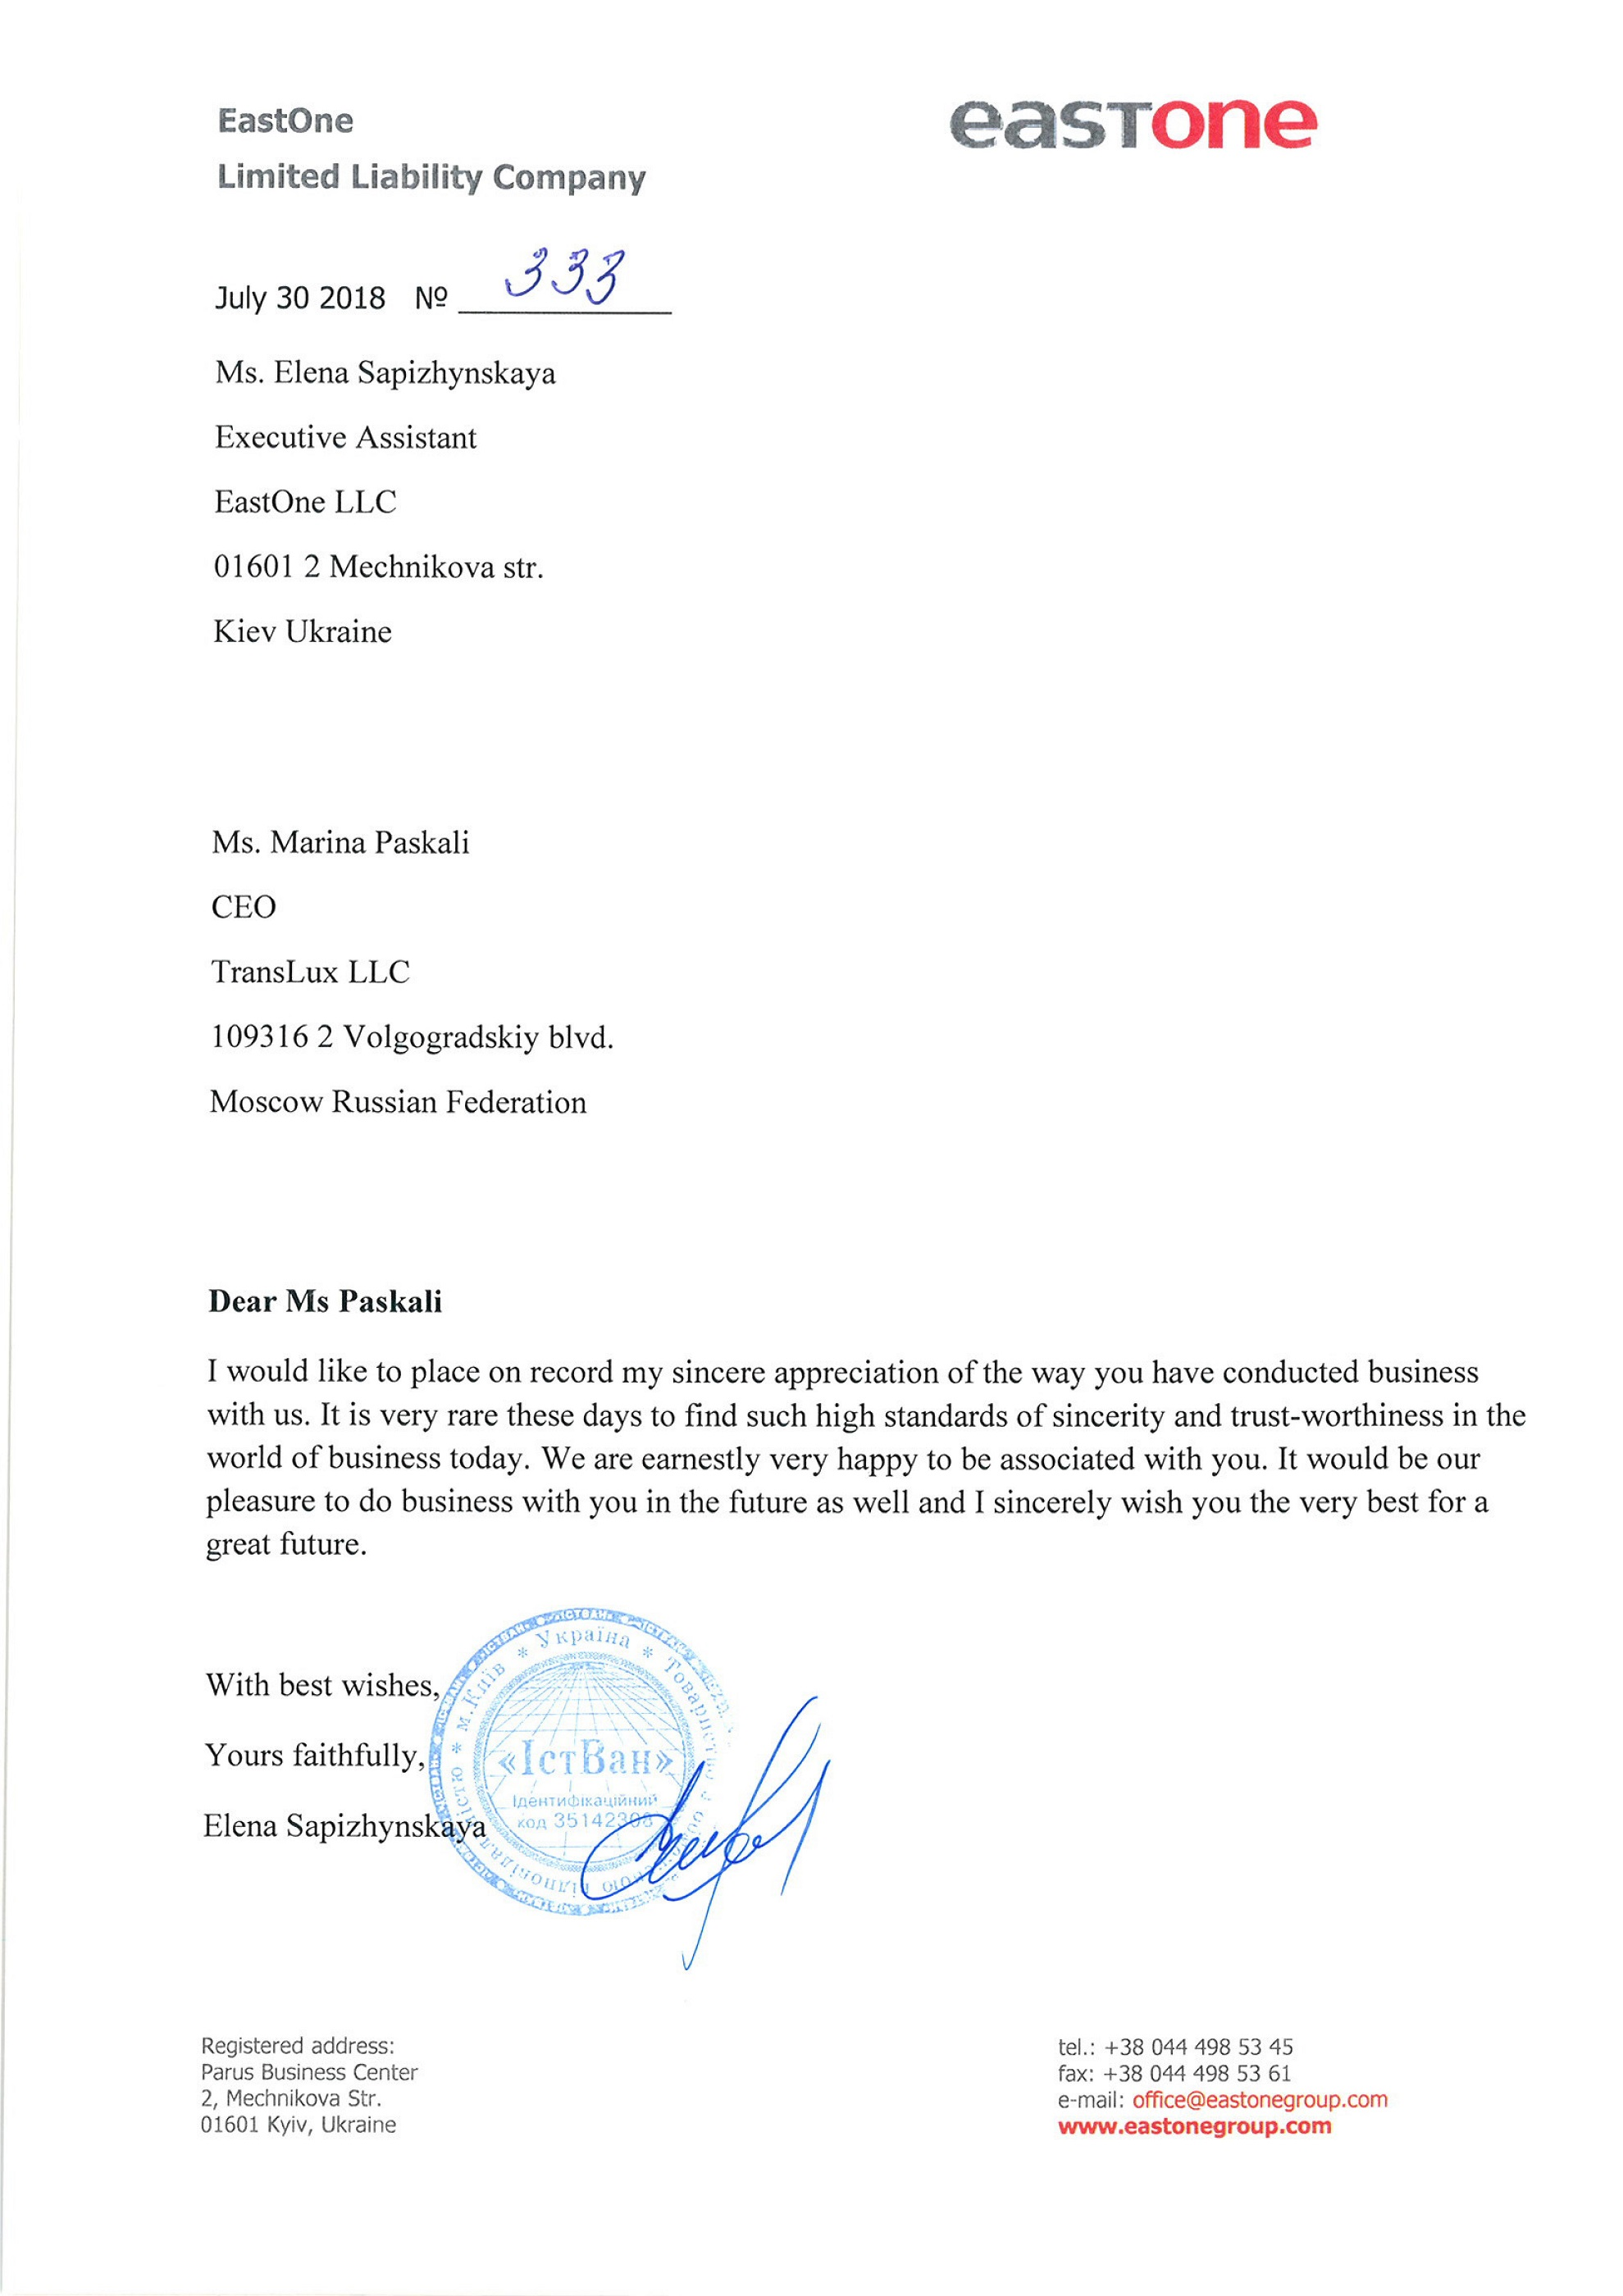 Letter of gratitude from EastOne Limited Liability Company